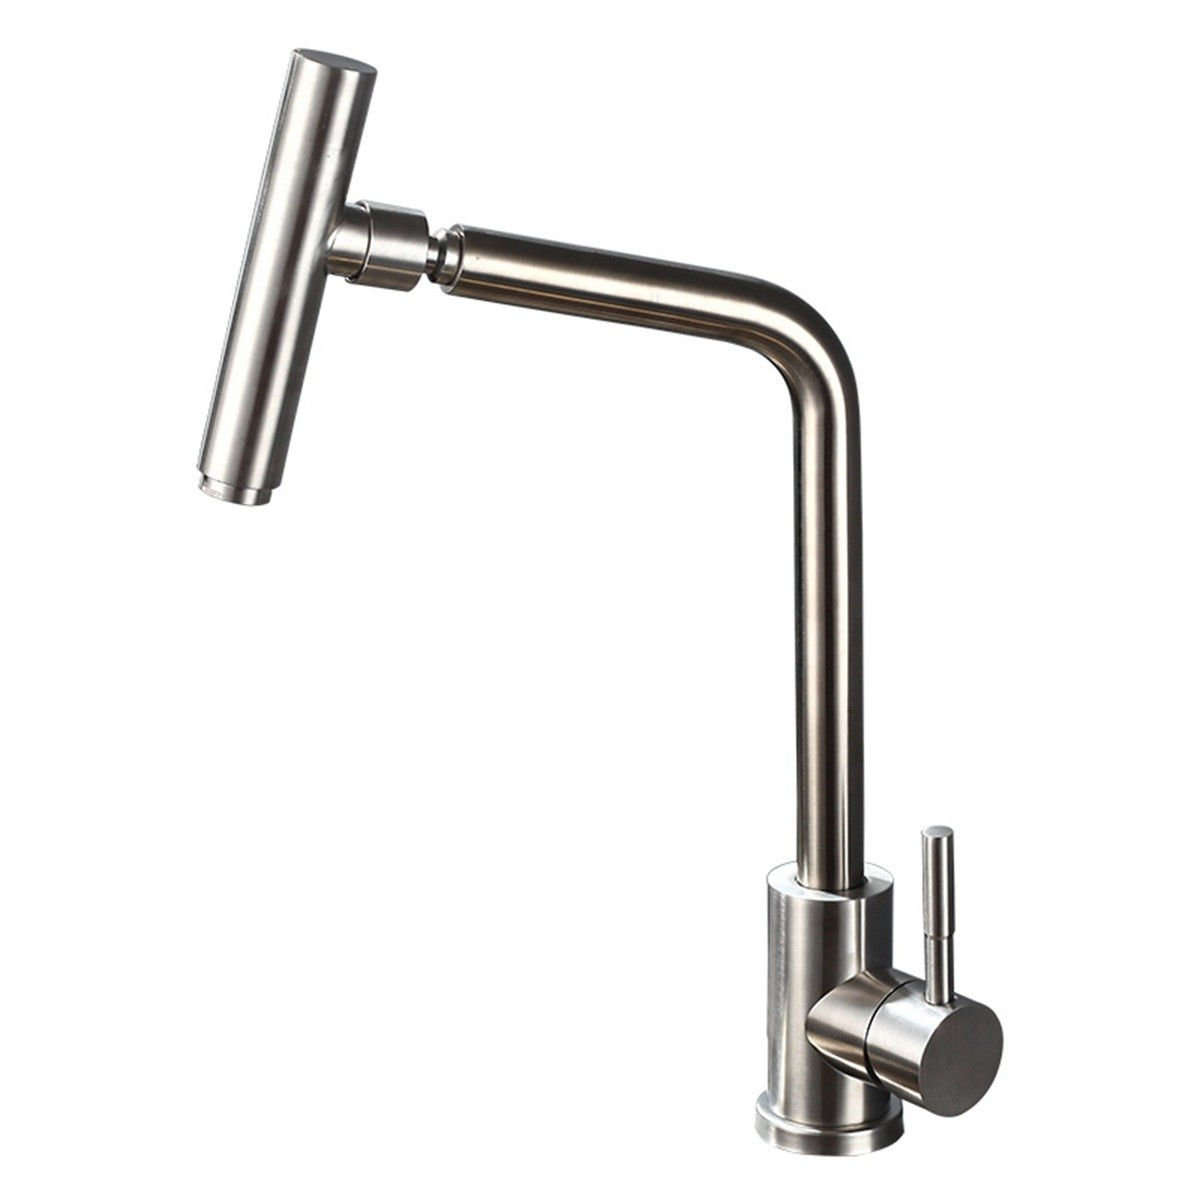 AQMMi Bathroom Sink Mixer Tap 304 Stainless Steel Brushed 43  23  15CM Taps for Bathroom Sink